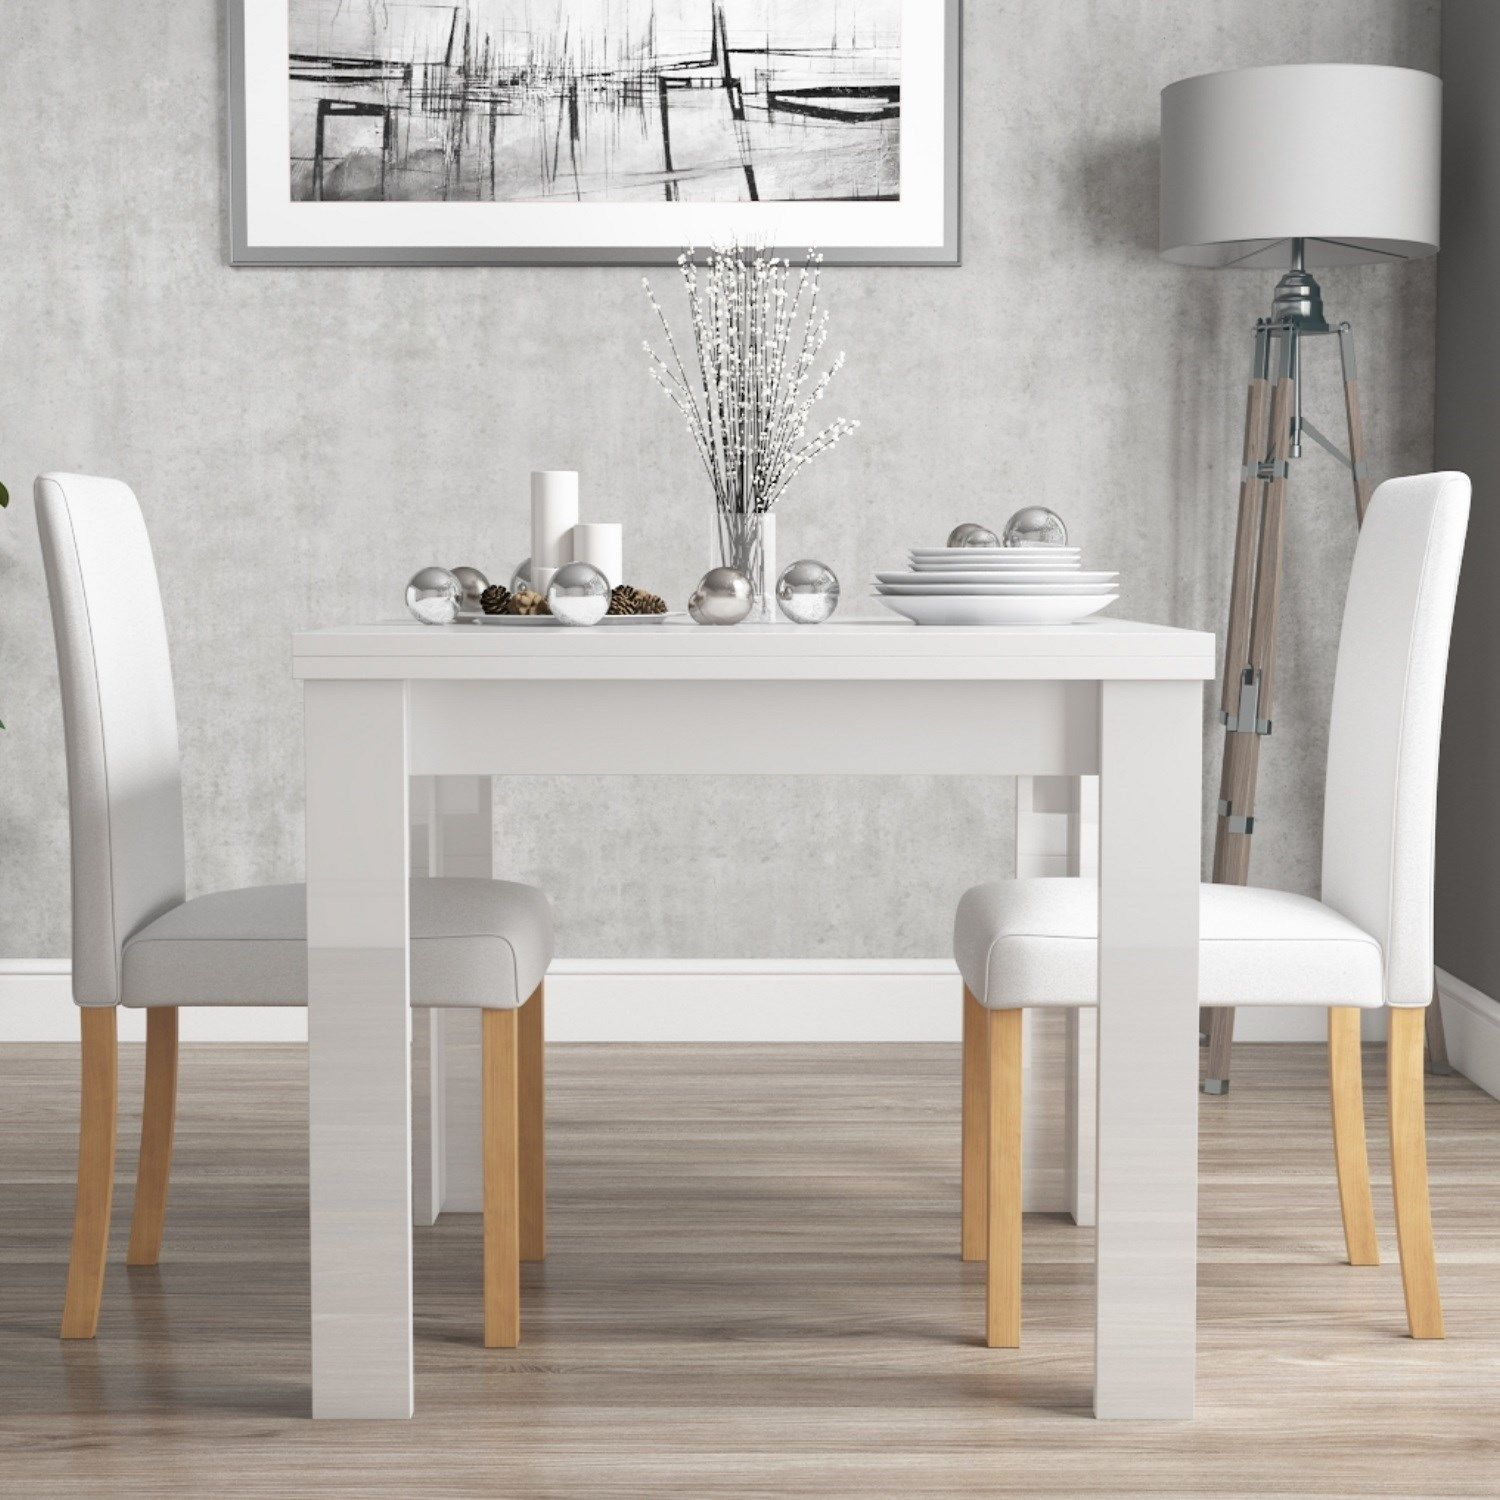 Vivienne Fliptop White Gloss Dining Table 2 Faux Leather Dining